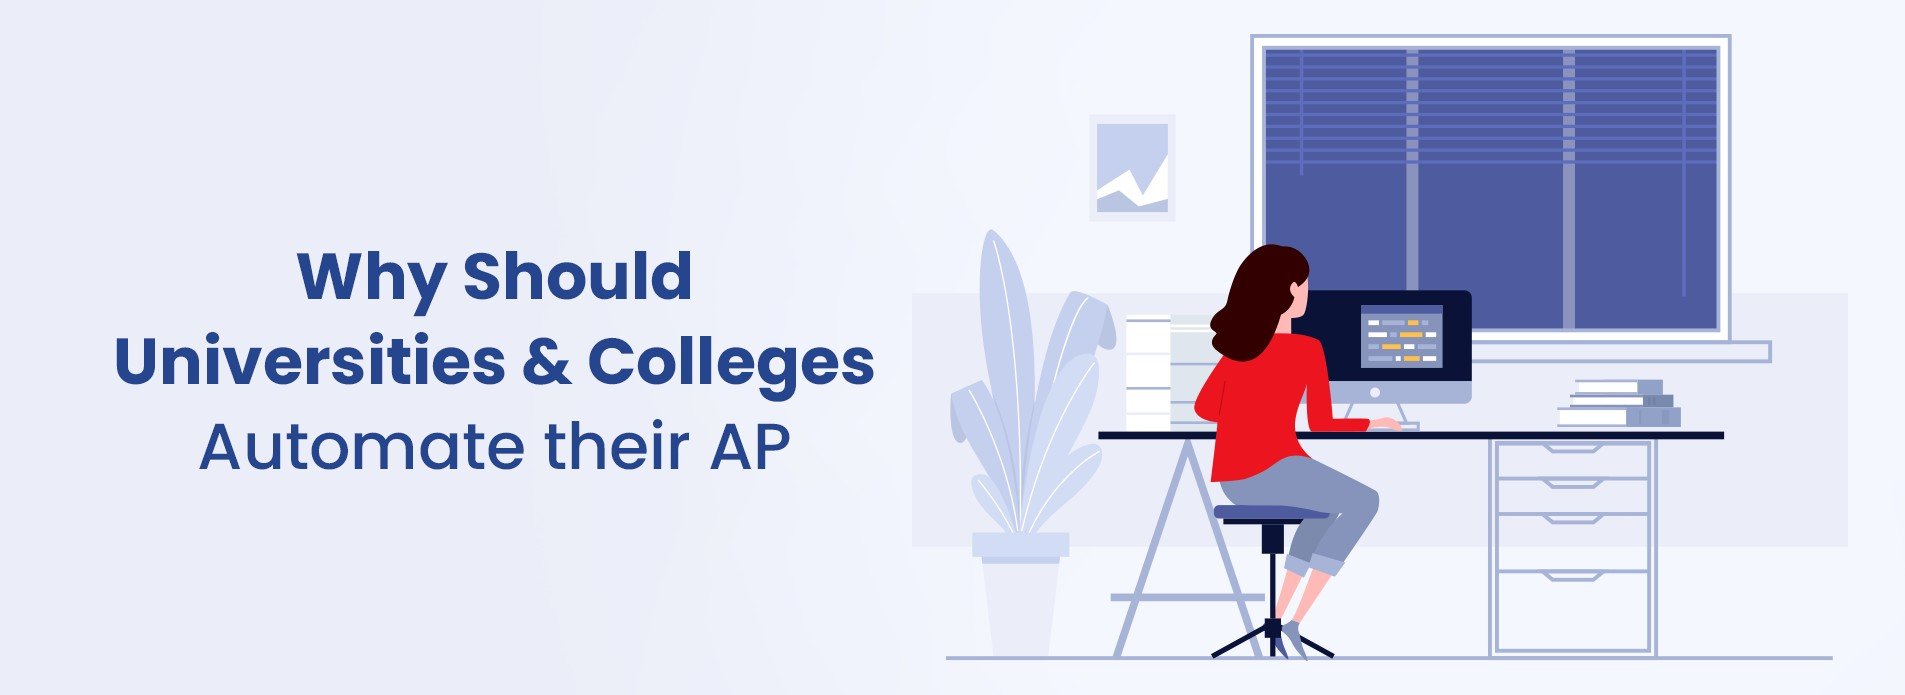 Why Should Universities & Colleges Automate their AP